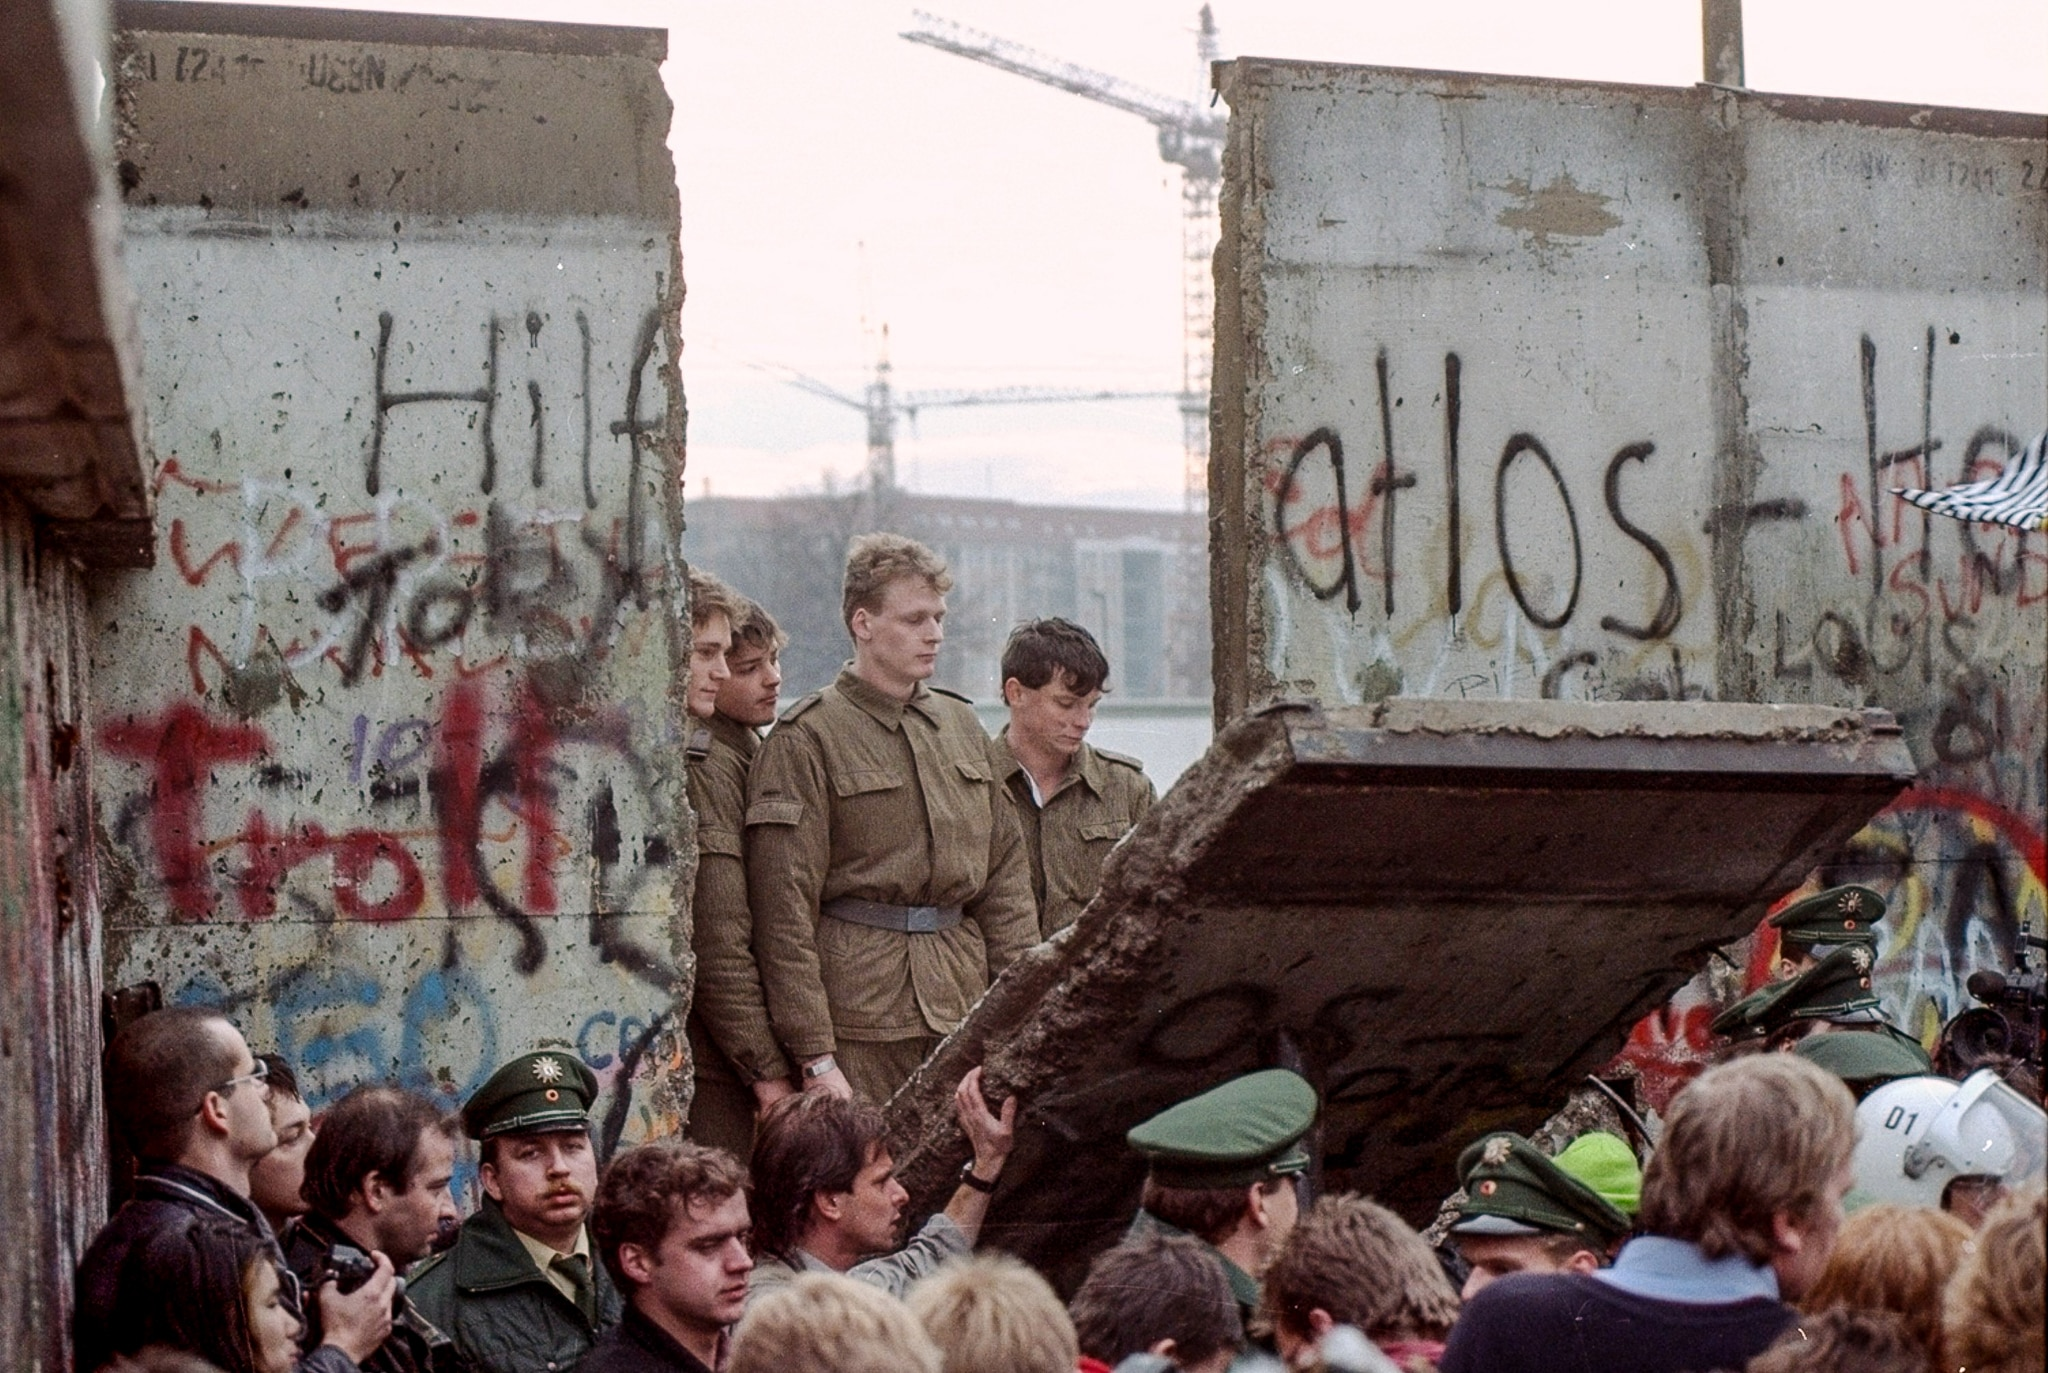 Soldiers and other people standing around opening in concrete wall (© AP Images)